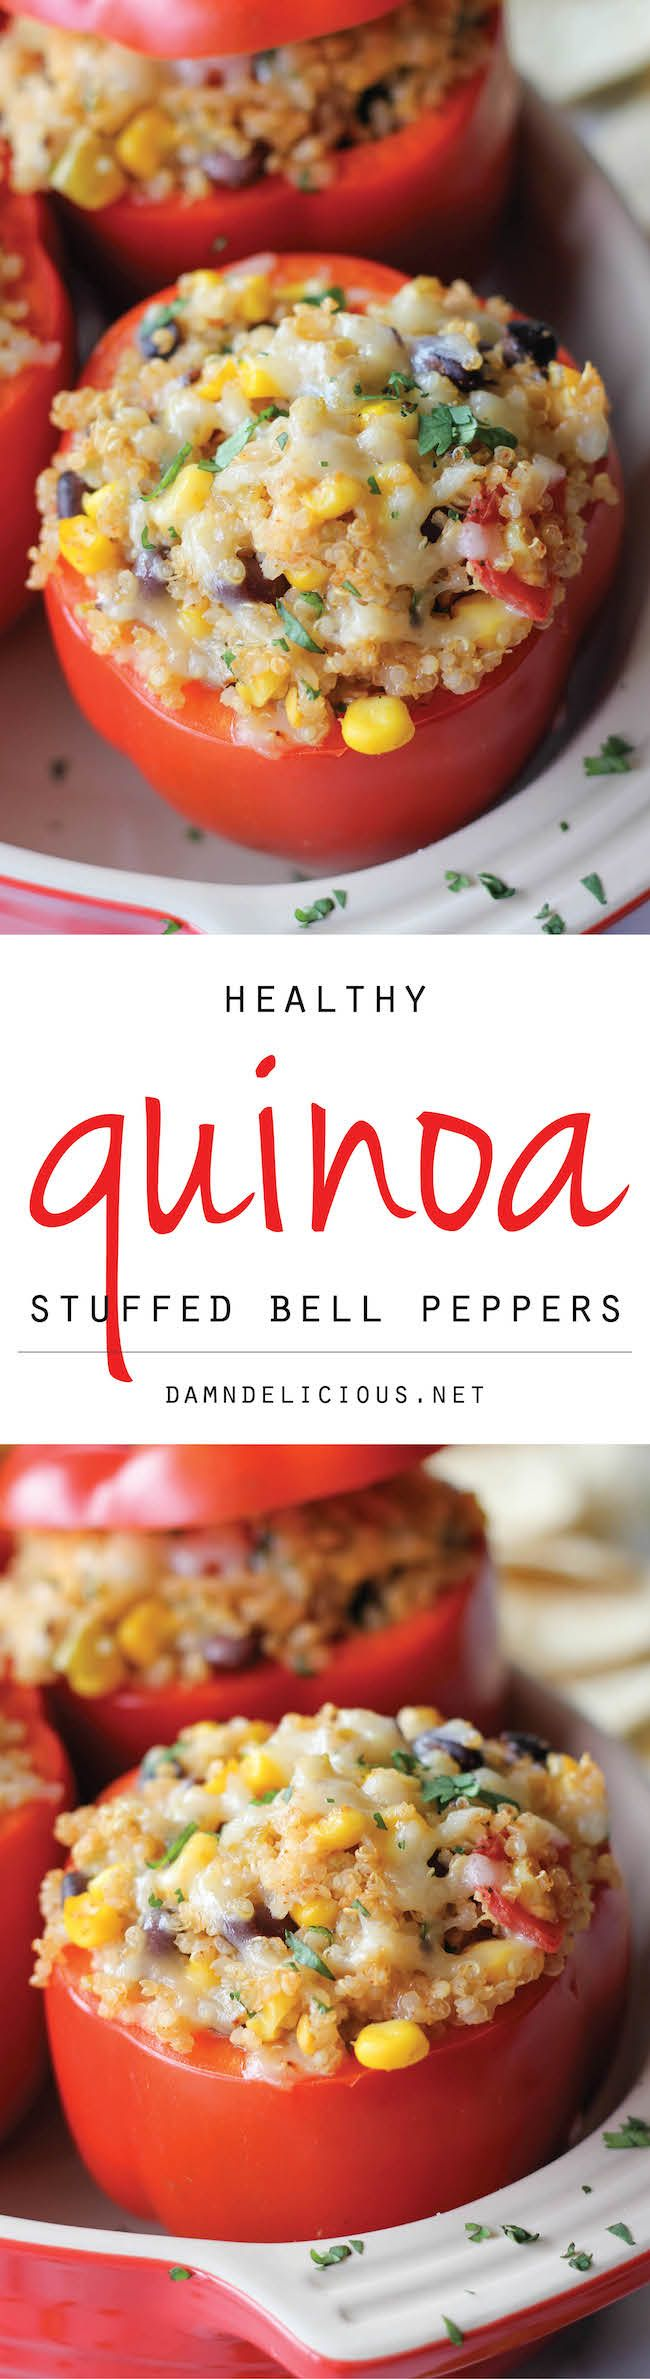 Quinoa Stuffed Bell Peppers - These stuffed bell peppers will provide the nutrition that you need for a healthy, balanced meal! Makes 6